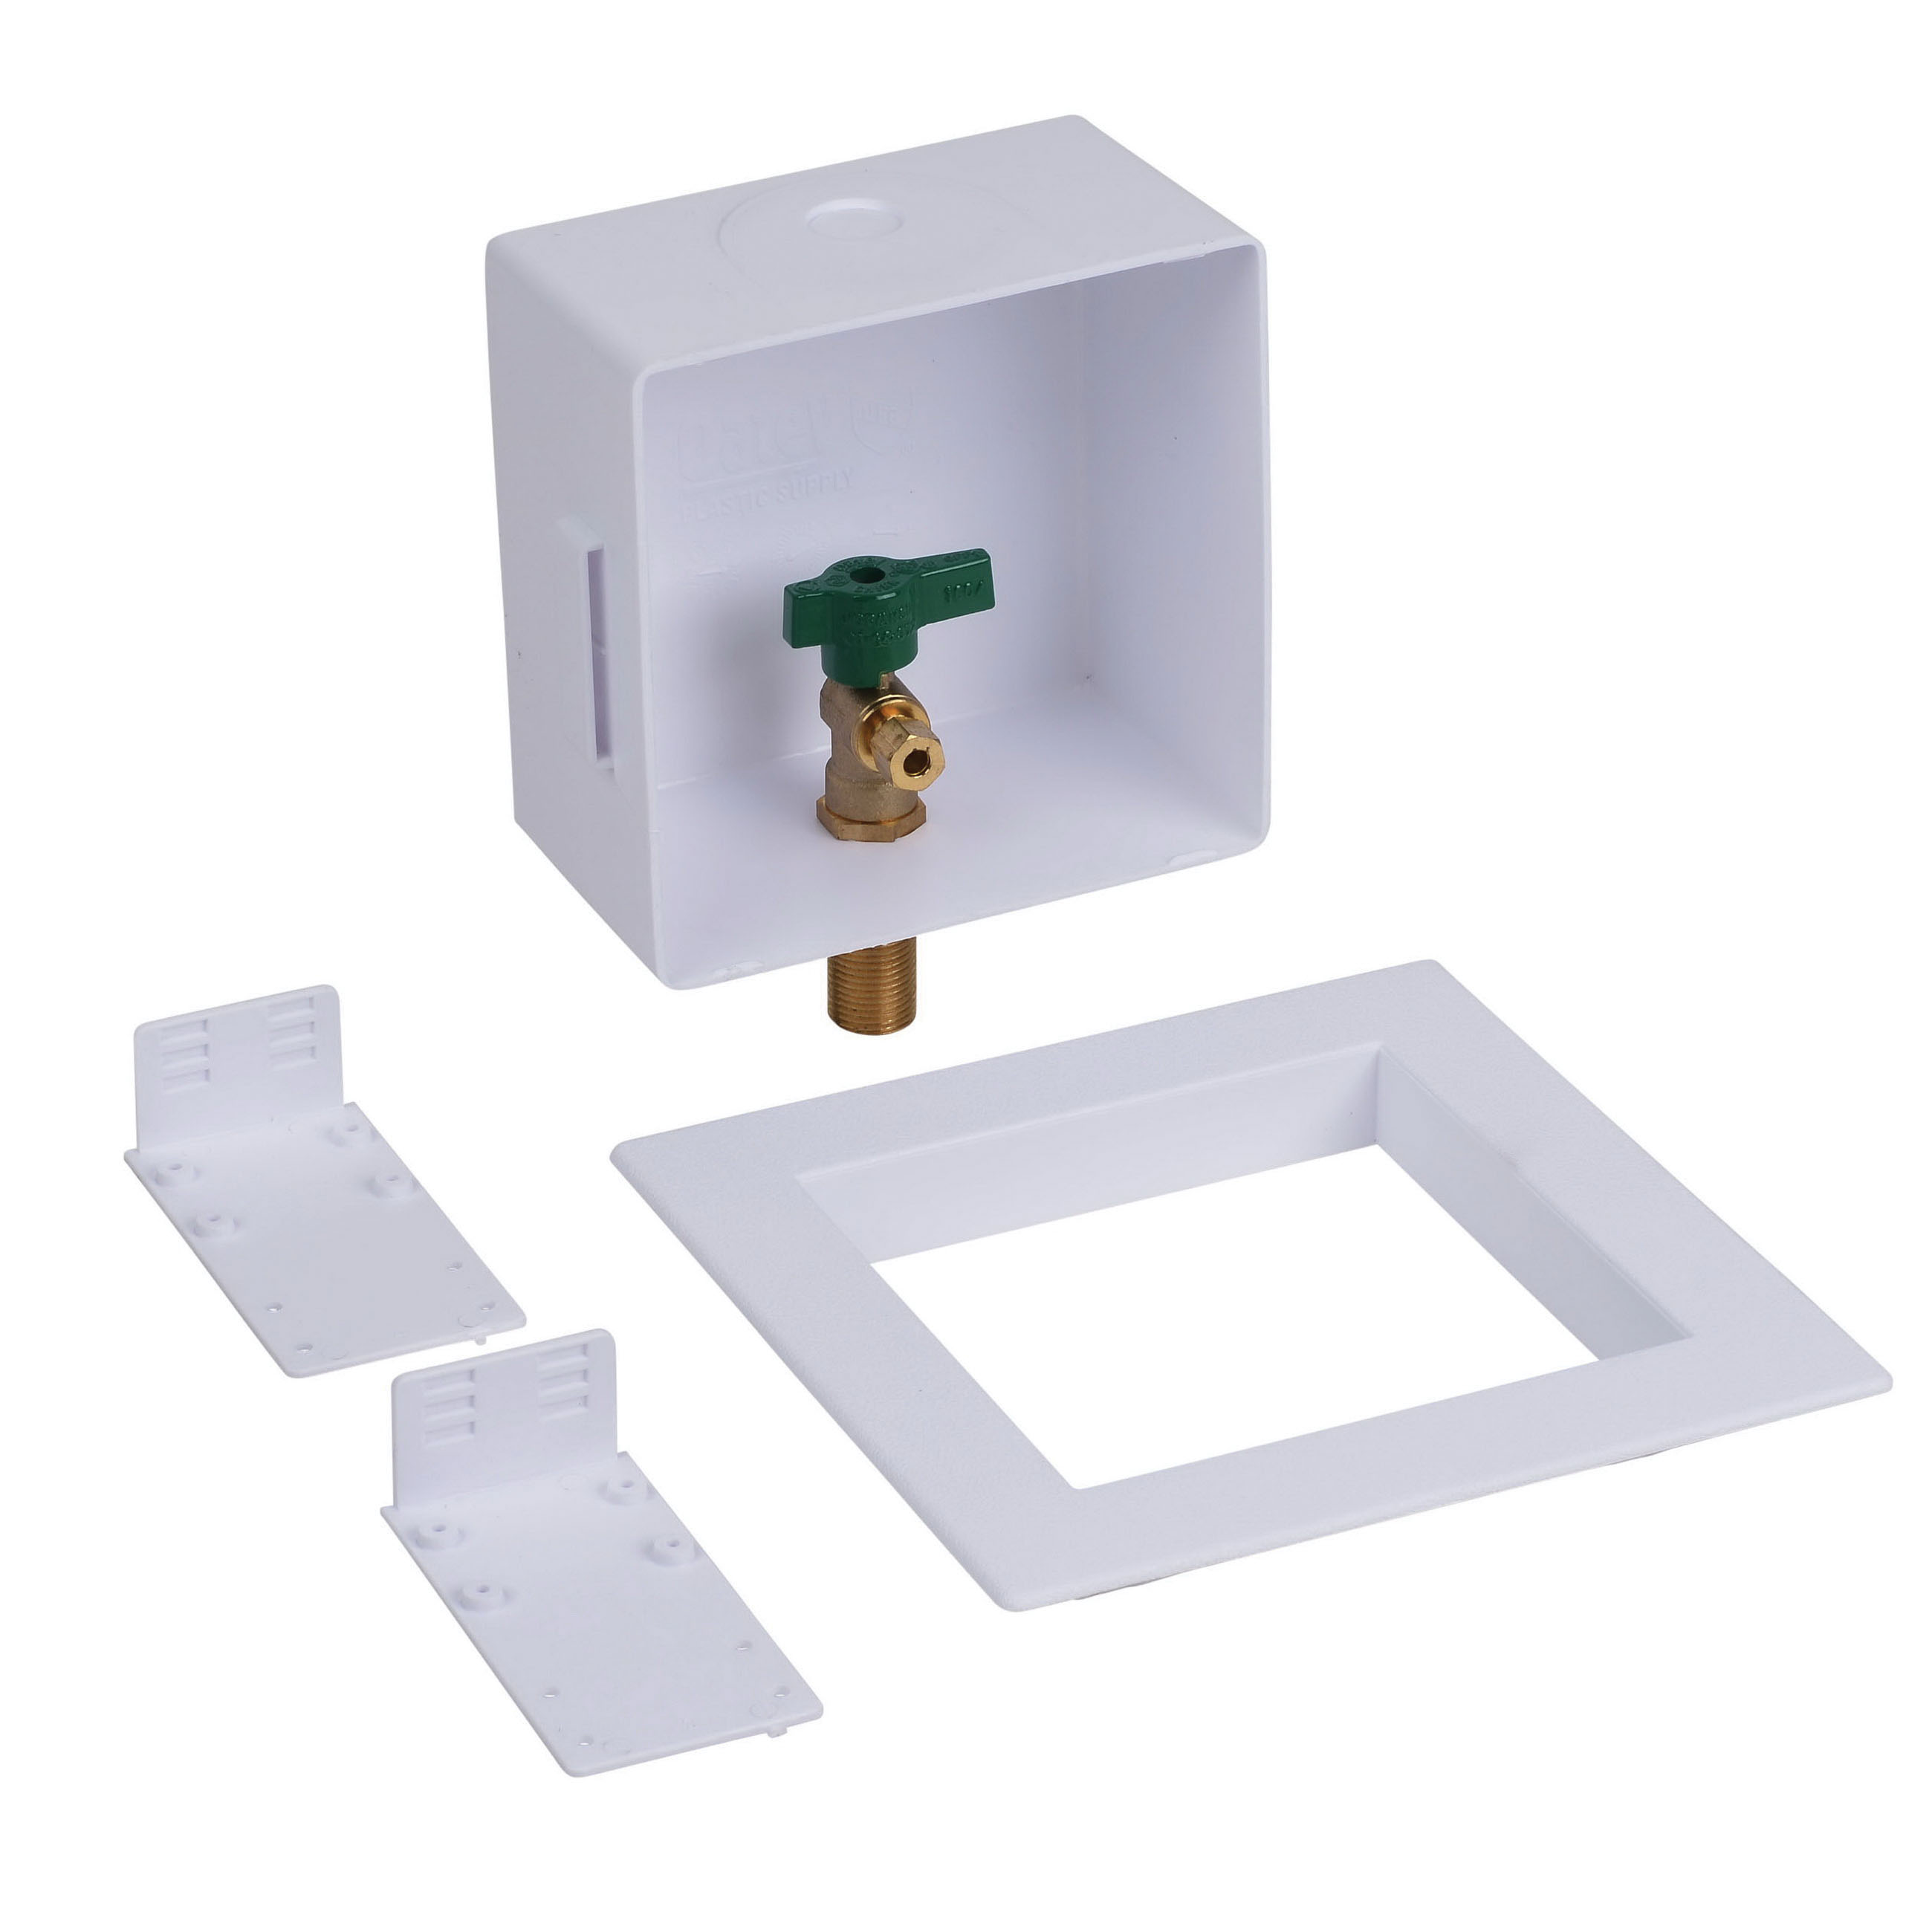 Oatey® 39156 White Polystyrene Square Ice Maker Outlet Box, 1/2 in, Copper